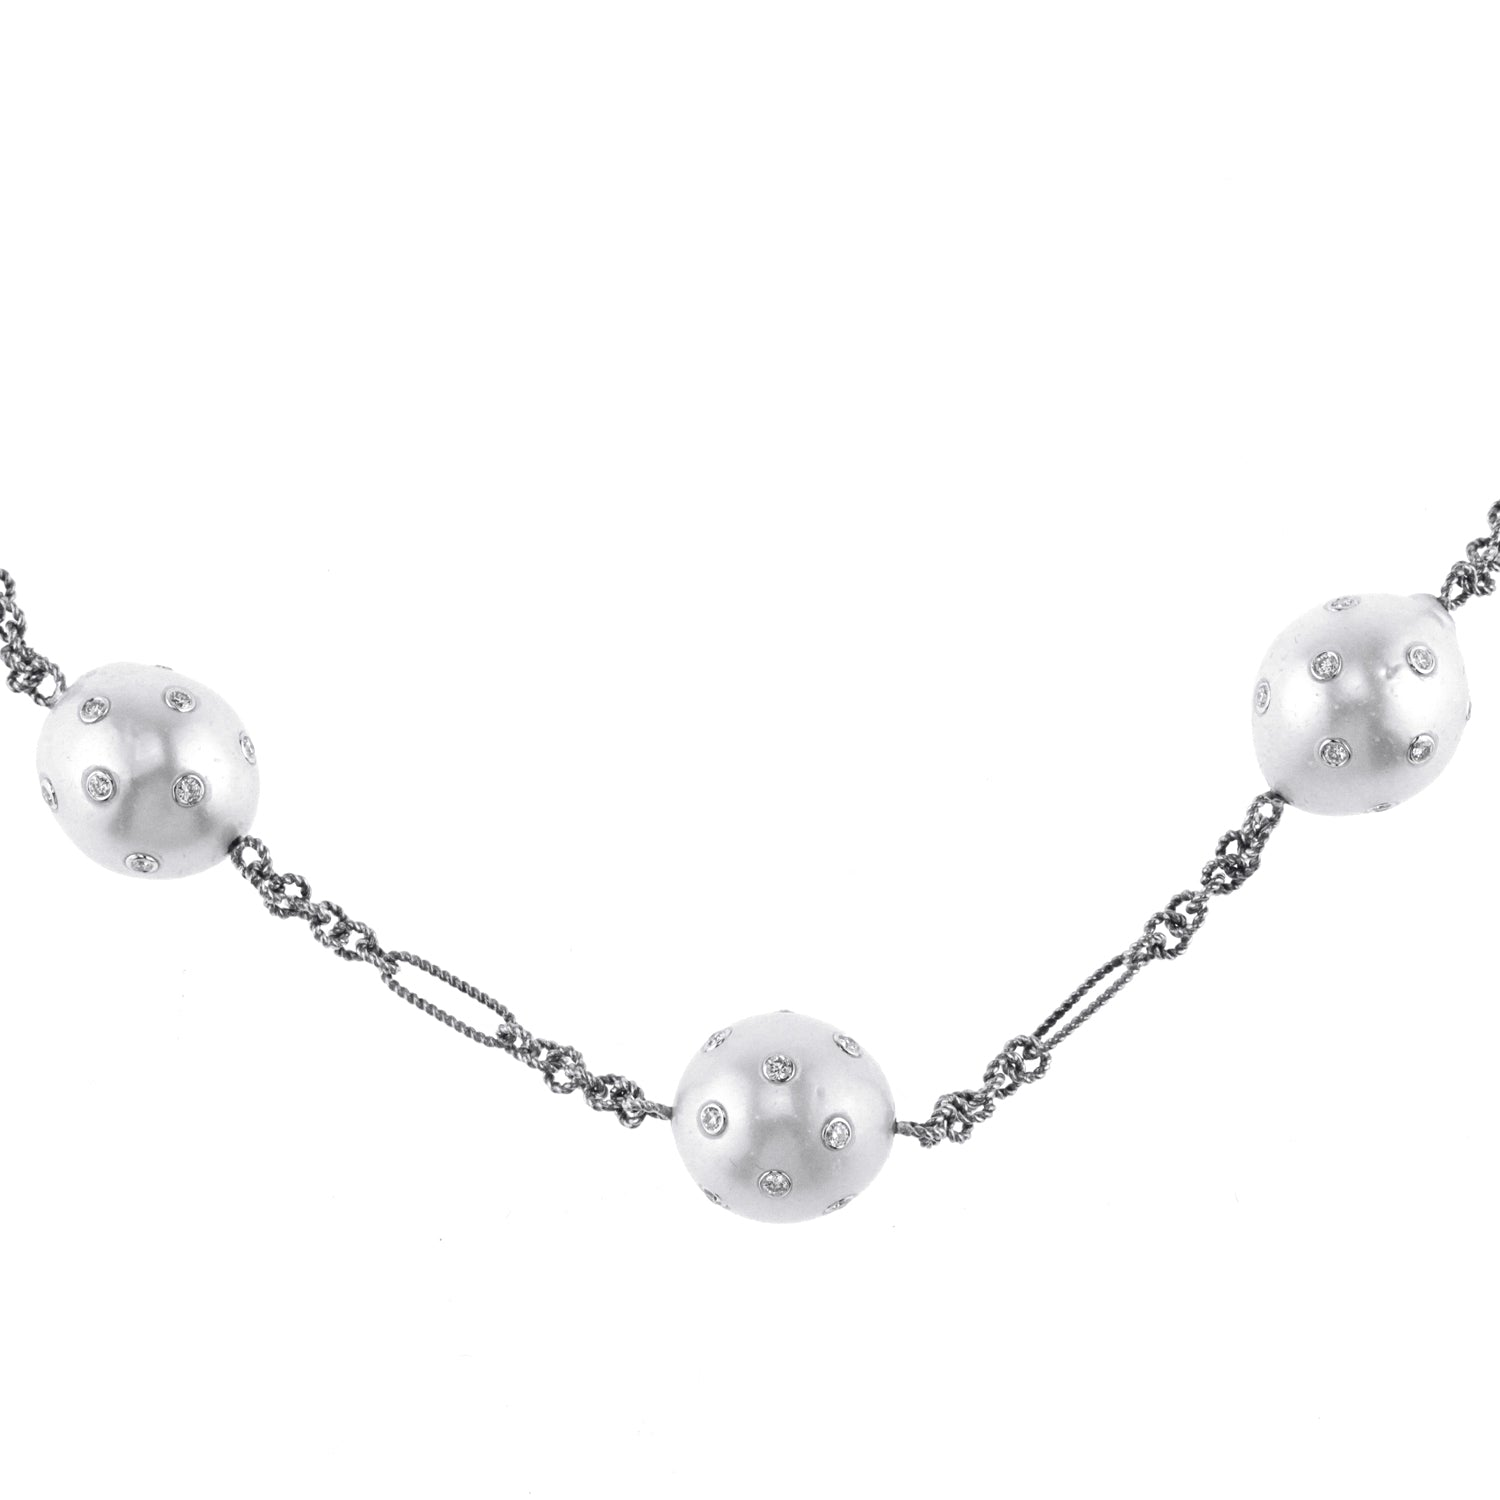 White Gold Chain with Diamond and Pearls